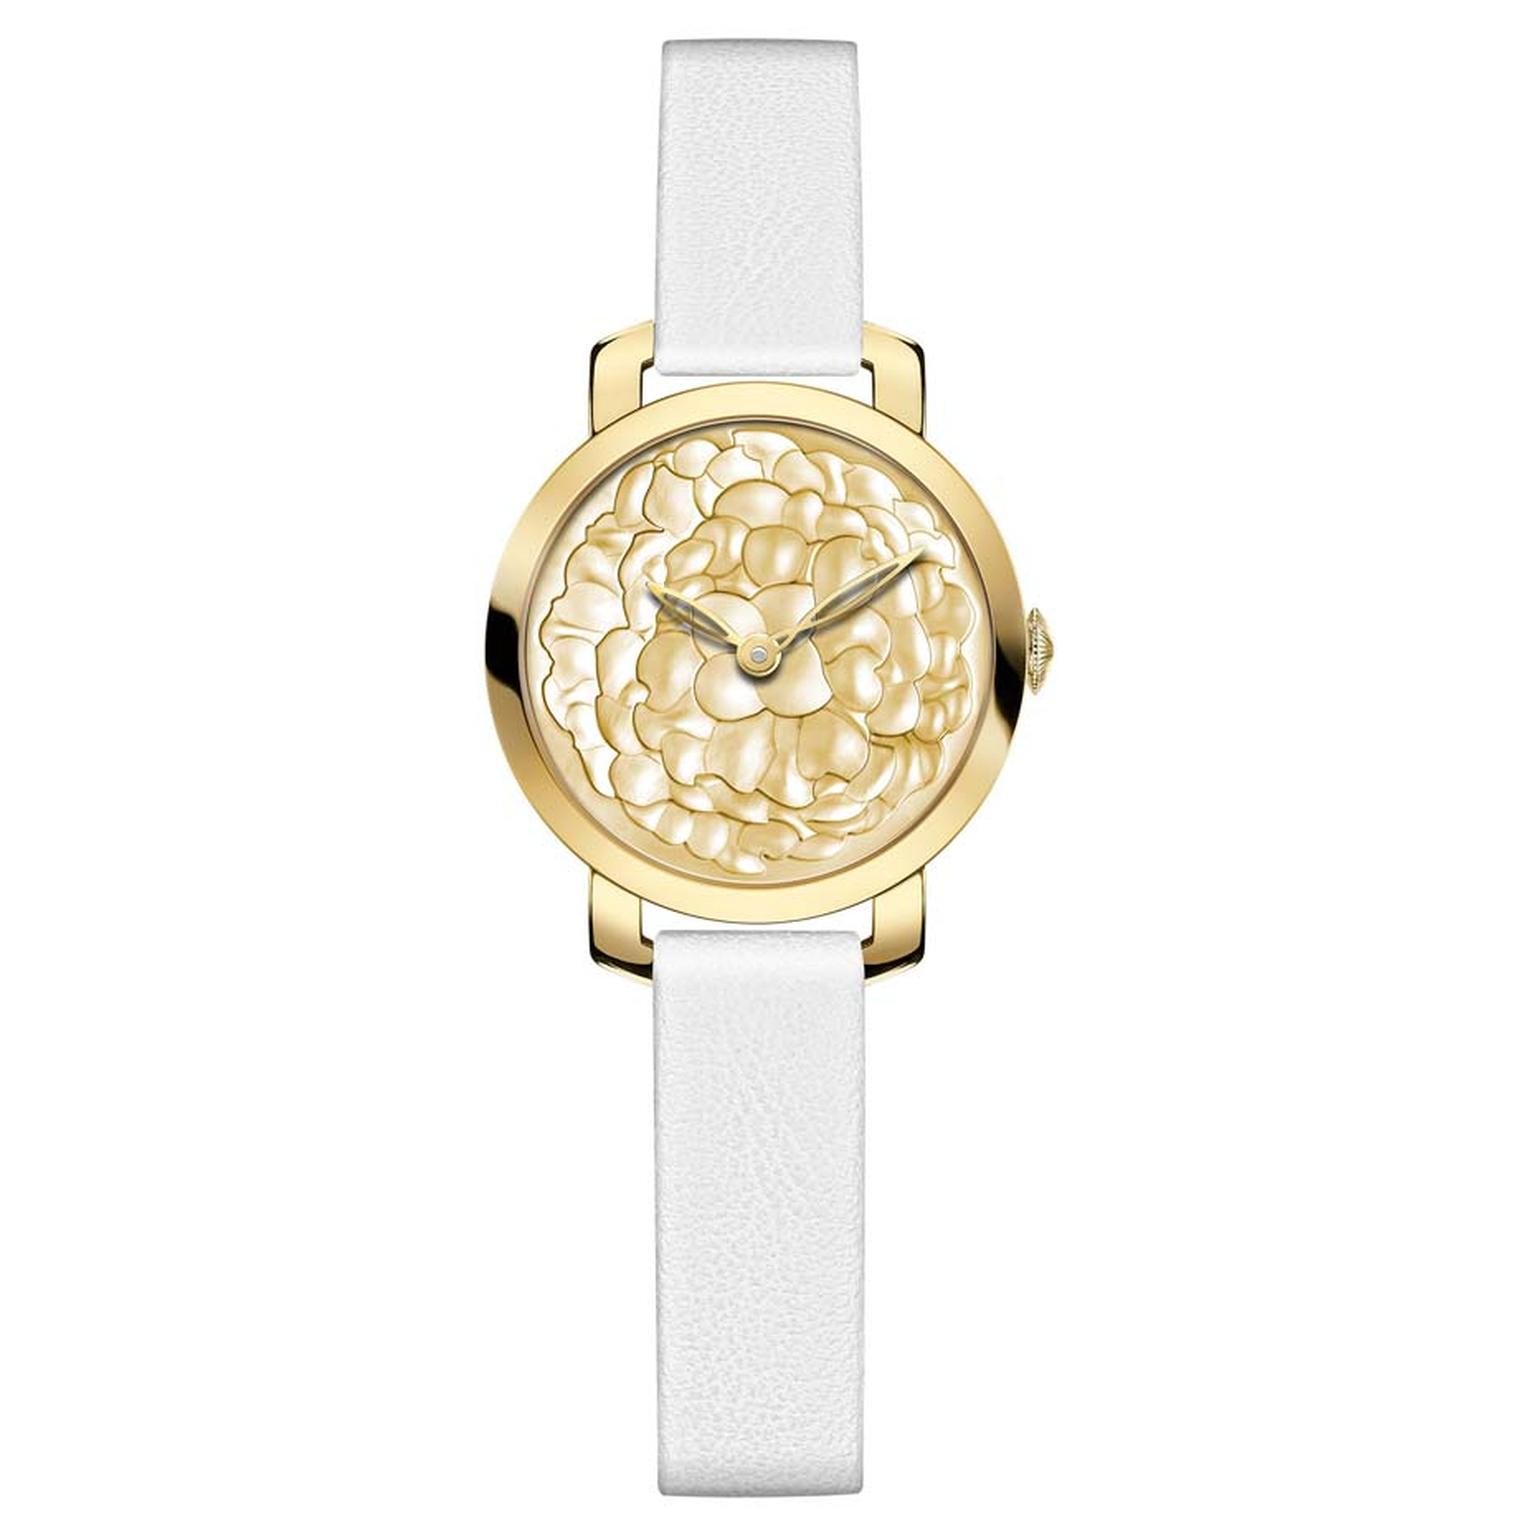 Chaumet Montres Pre´ciuses collection watch in yellow gold featuring a dial with rounded marquetry and polished gold mother of pearl